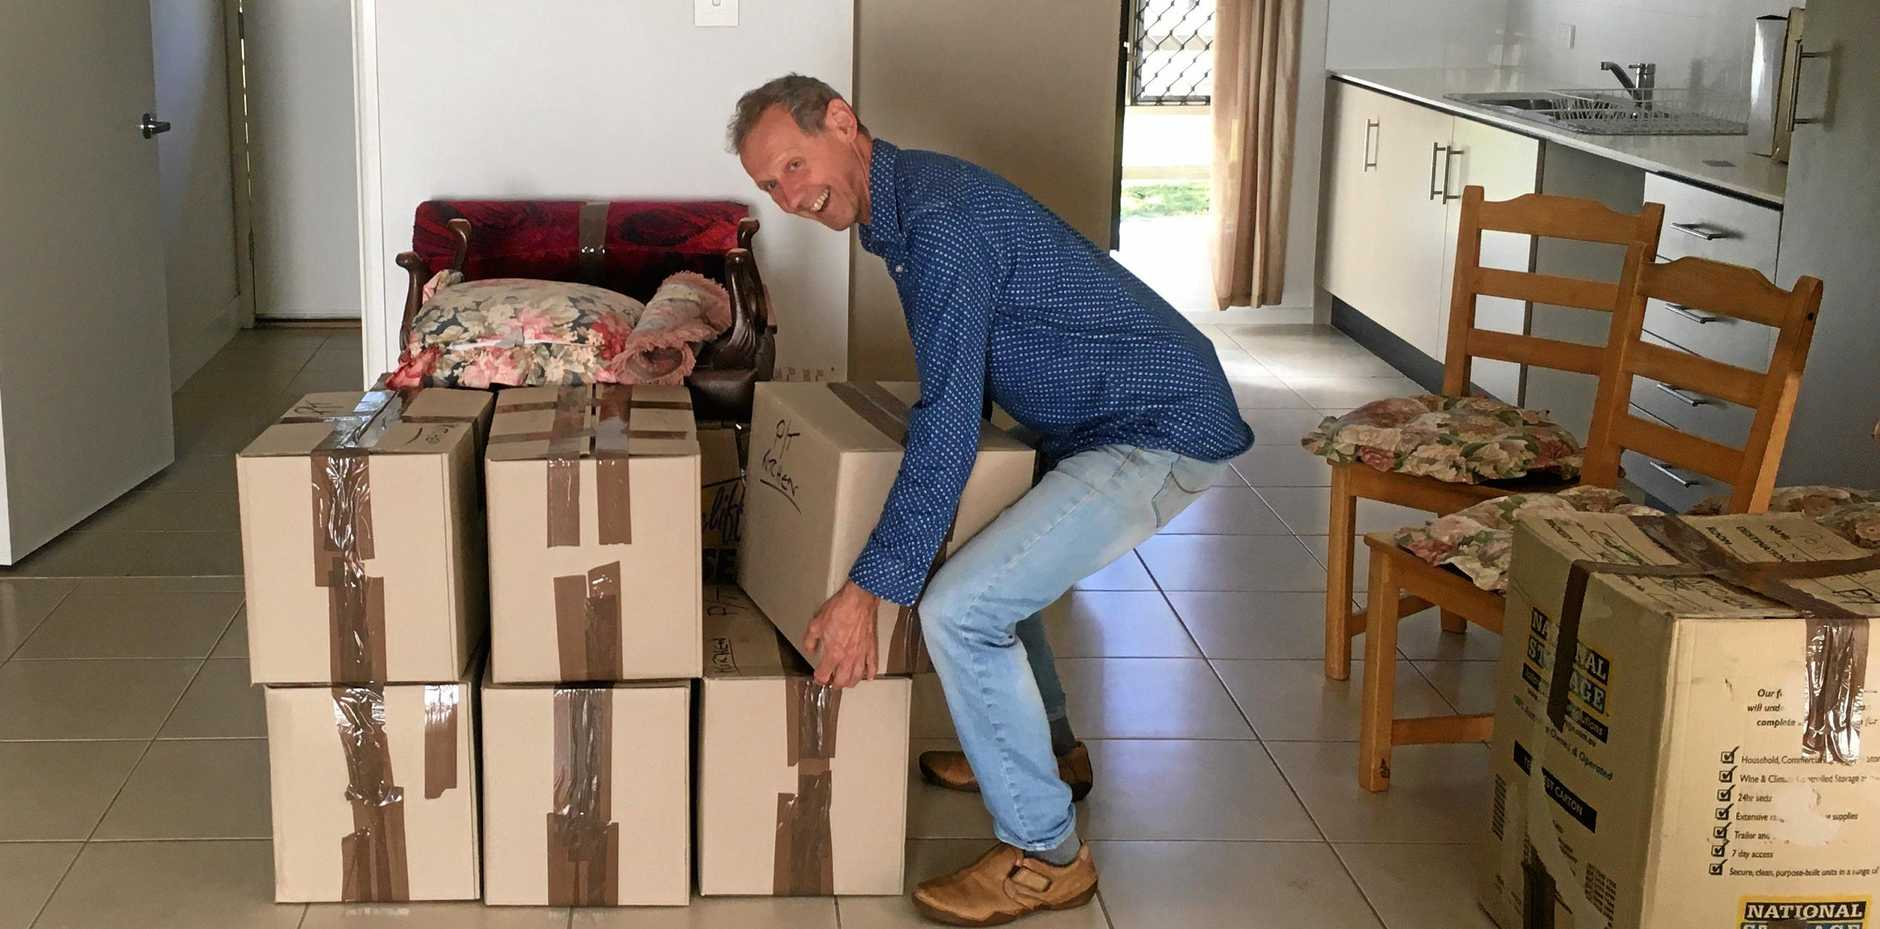 WELCOME ARRIVAL: Eric von Nida, from Carinity Our House, unloads boxes of household goods donated to a disability services client with no possessions.